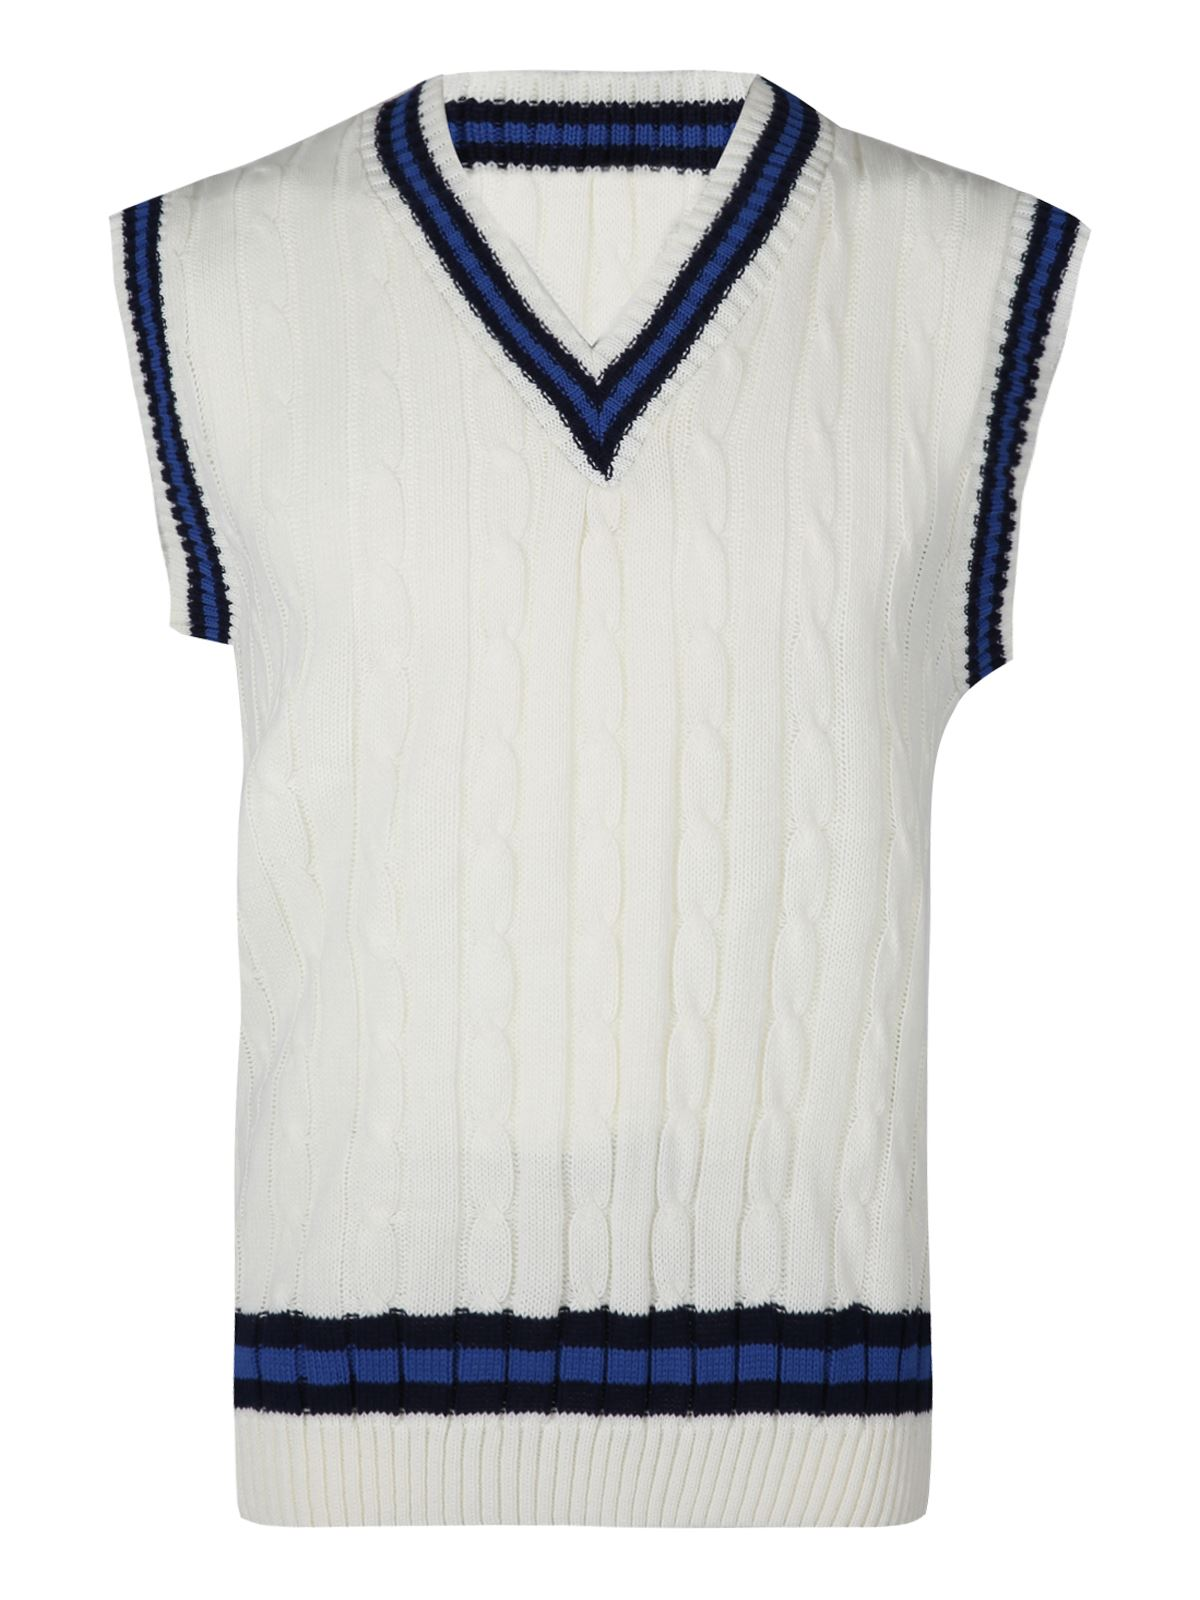 Mens Classic Cricket Cable Knitted Tank Top V Neck Sleeveless Stripe